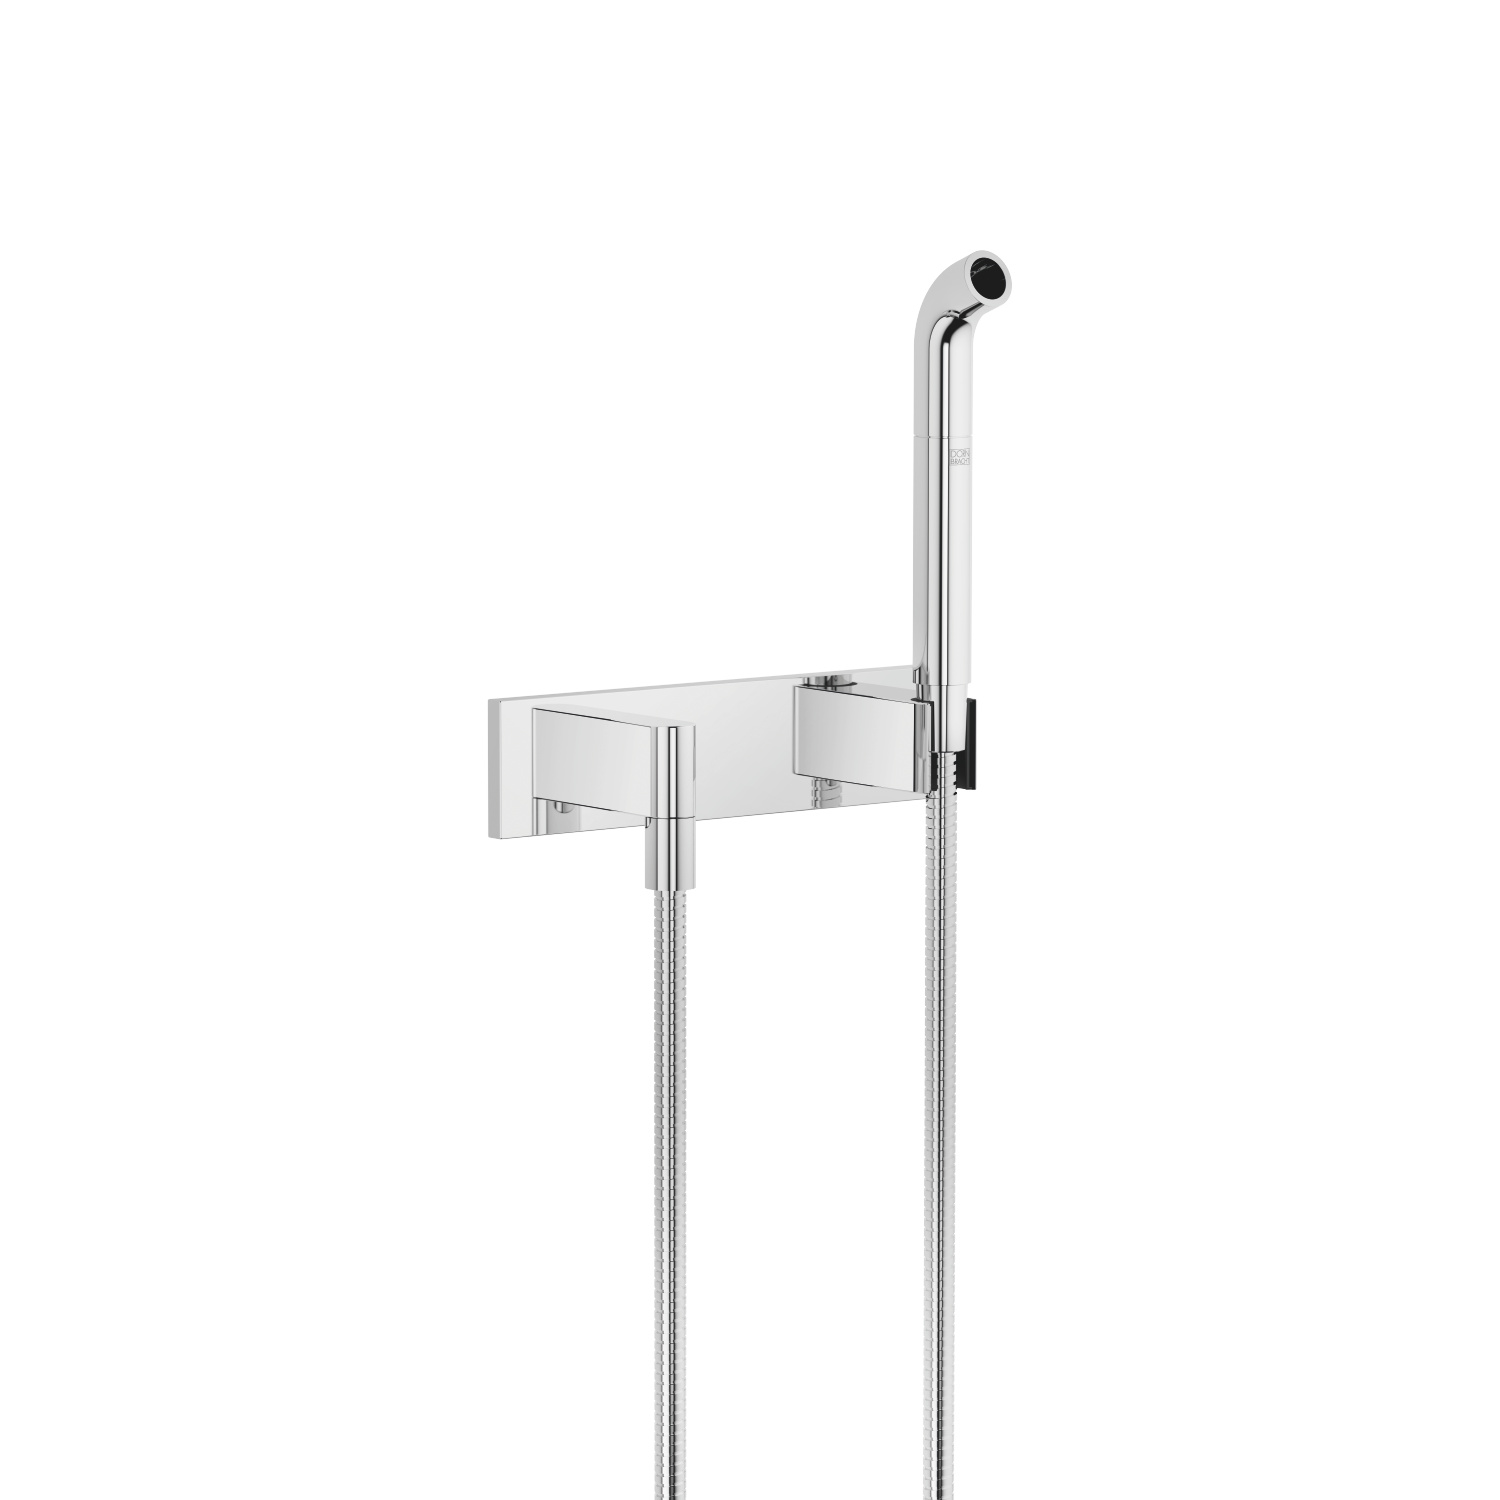 Affusion pipe with cover plate - polished chrome